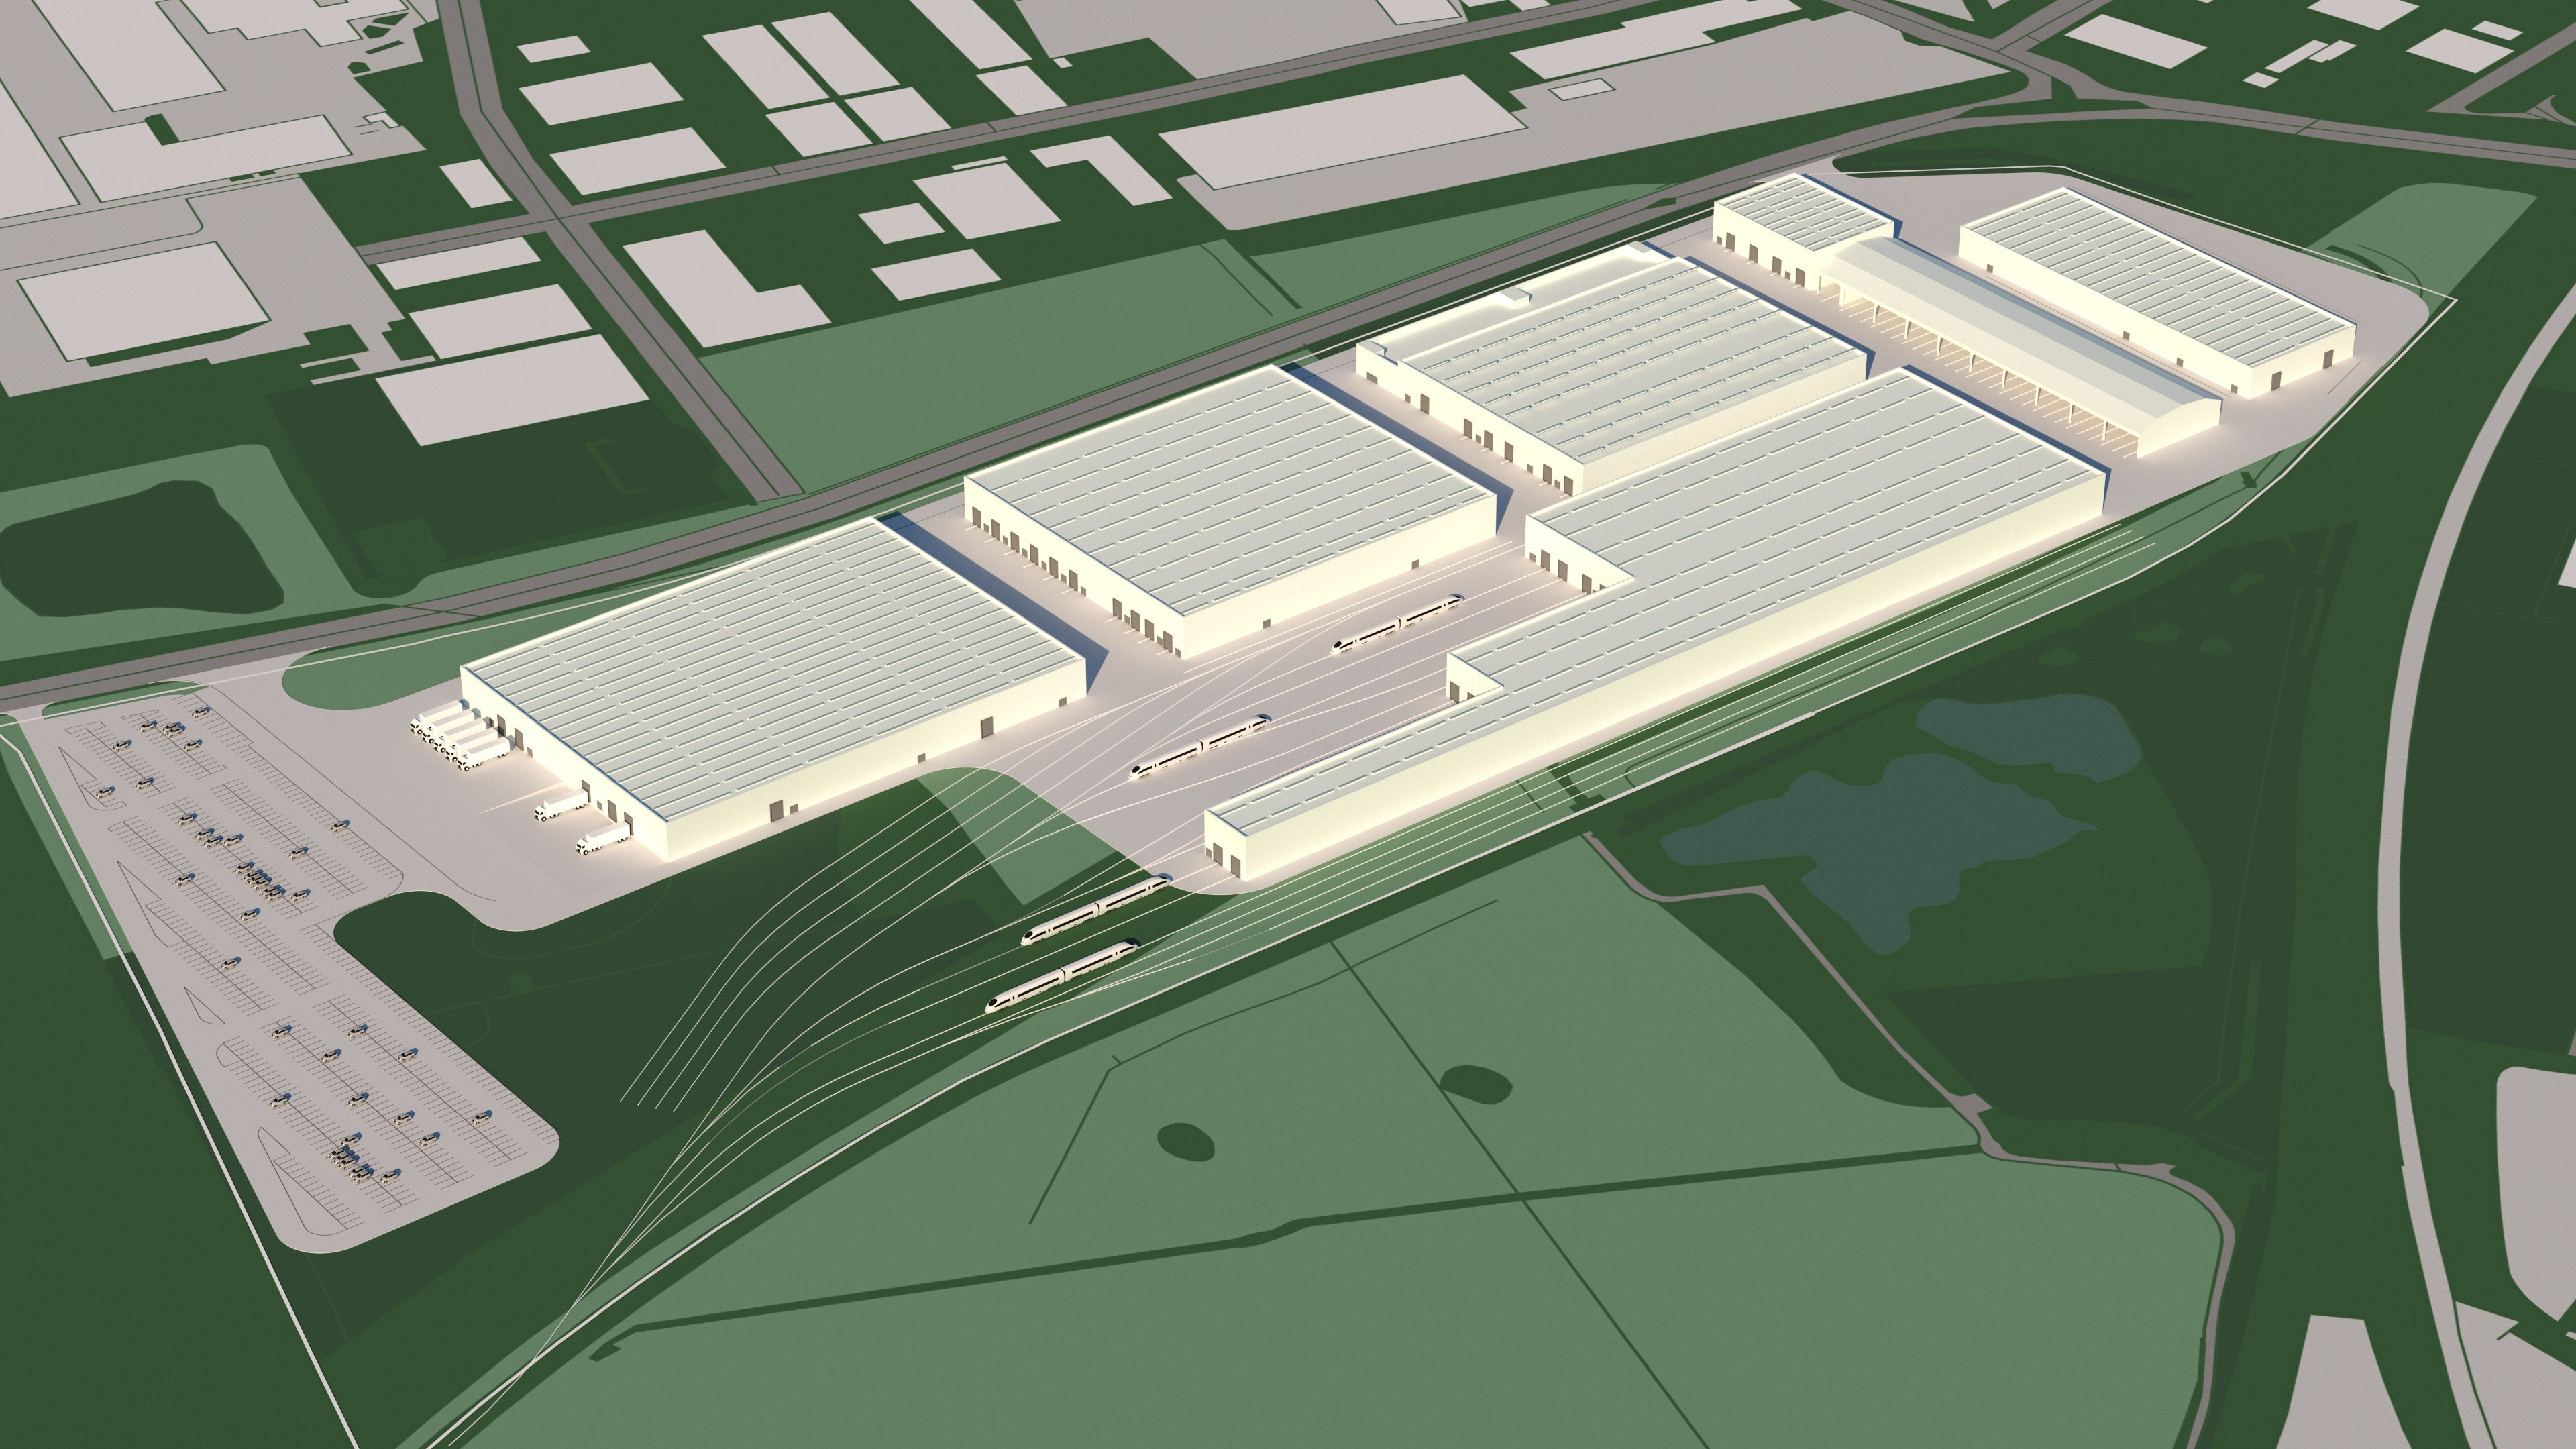 Siemens train factory plant planned in Goole